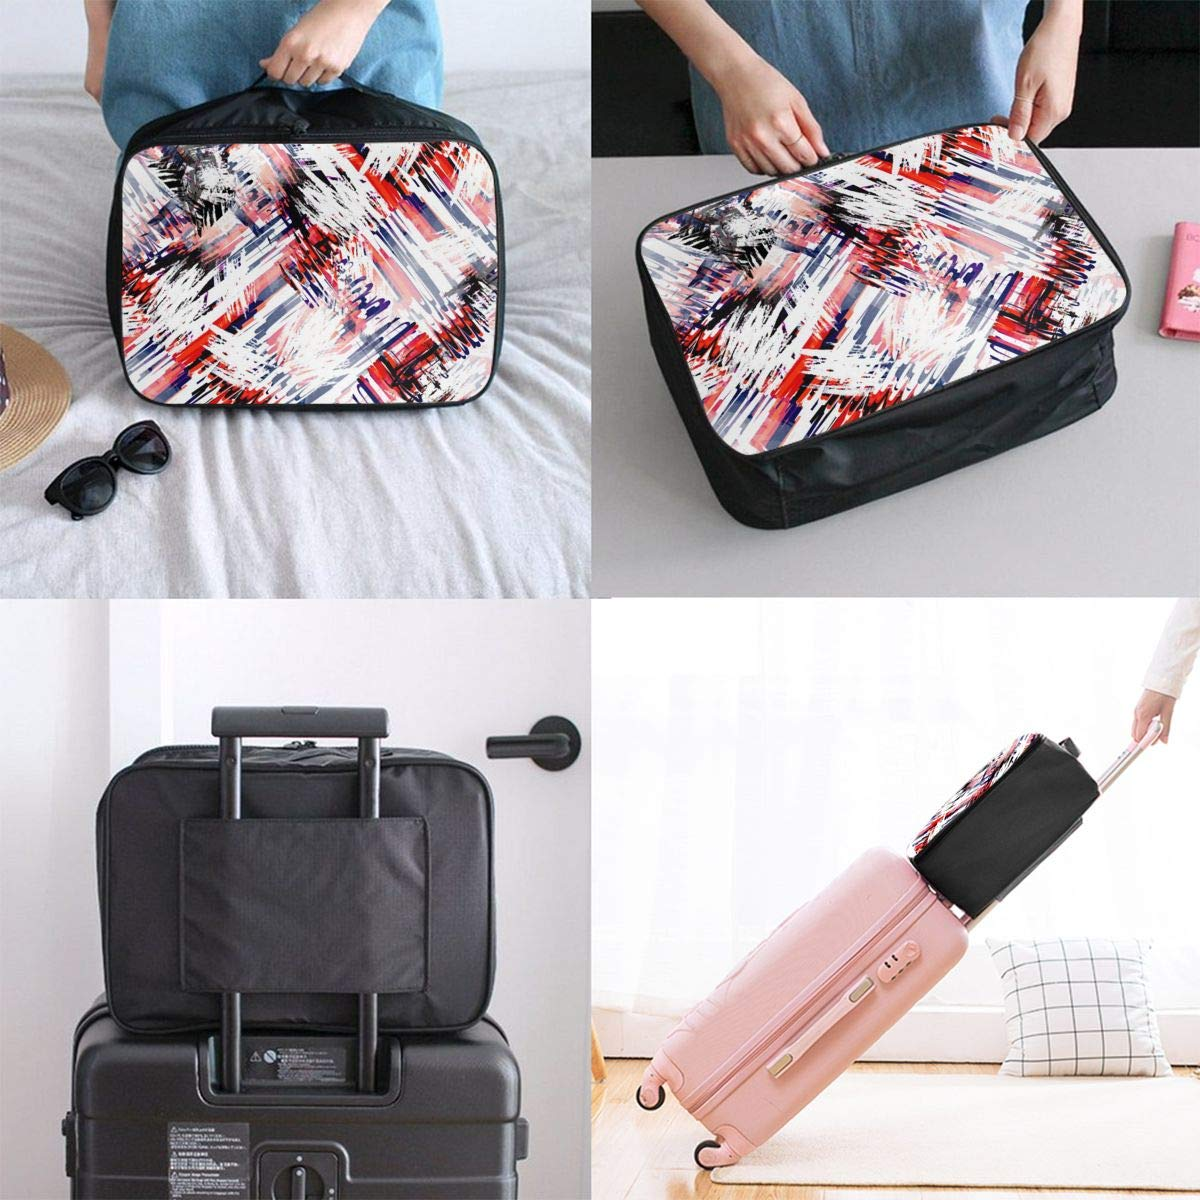 Fuzzy Geometric Pattern Travel Lightweight Waterproof Folding Storage Carry Luggage Duffle Tote Bag Large Capacity In Trolley Handle Bags 6x11x15 Inch